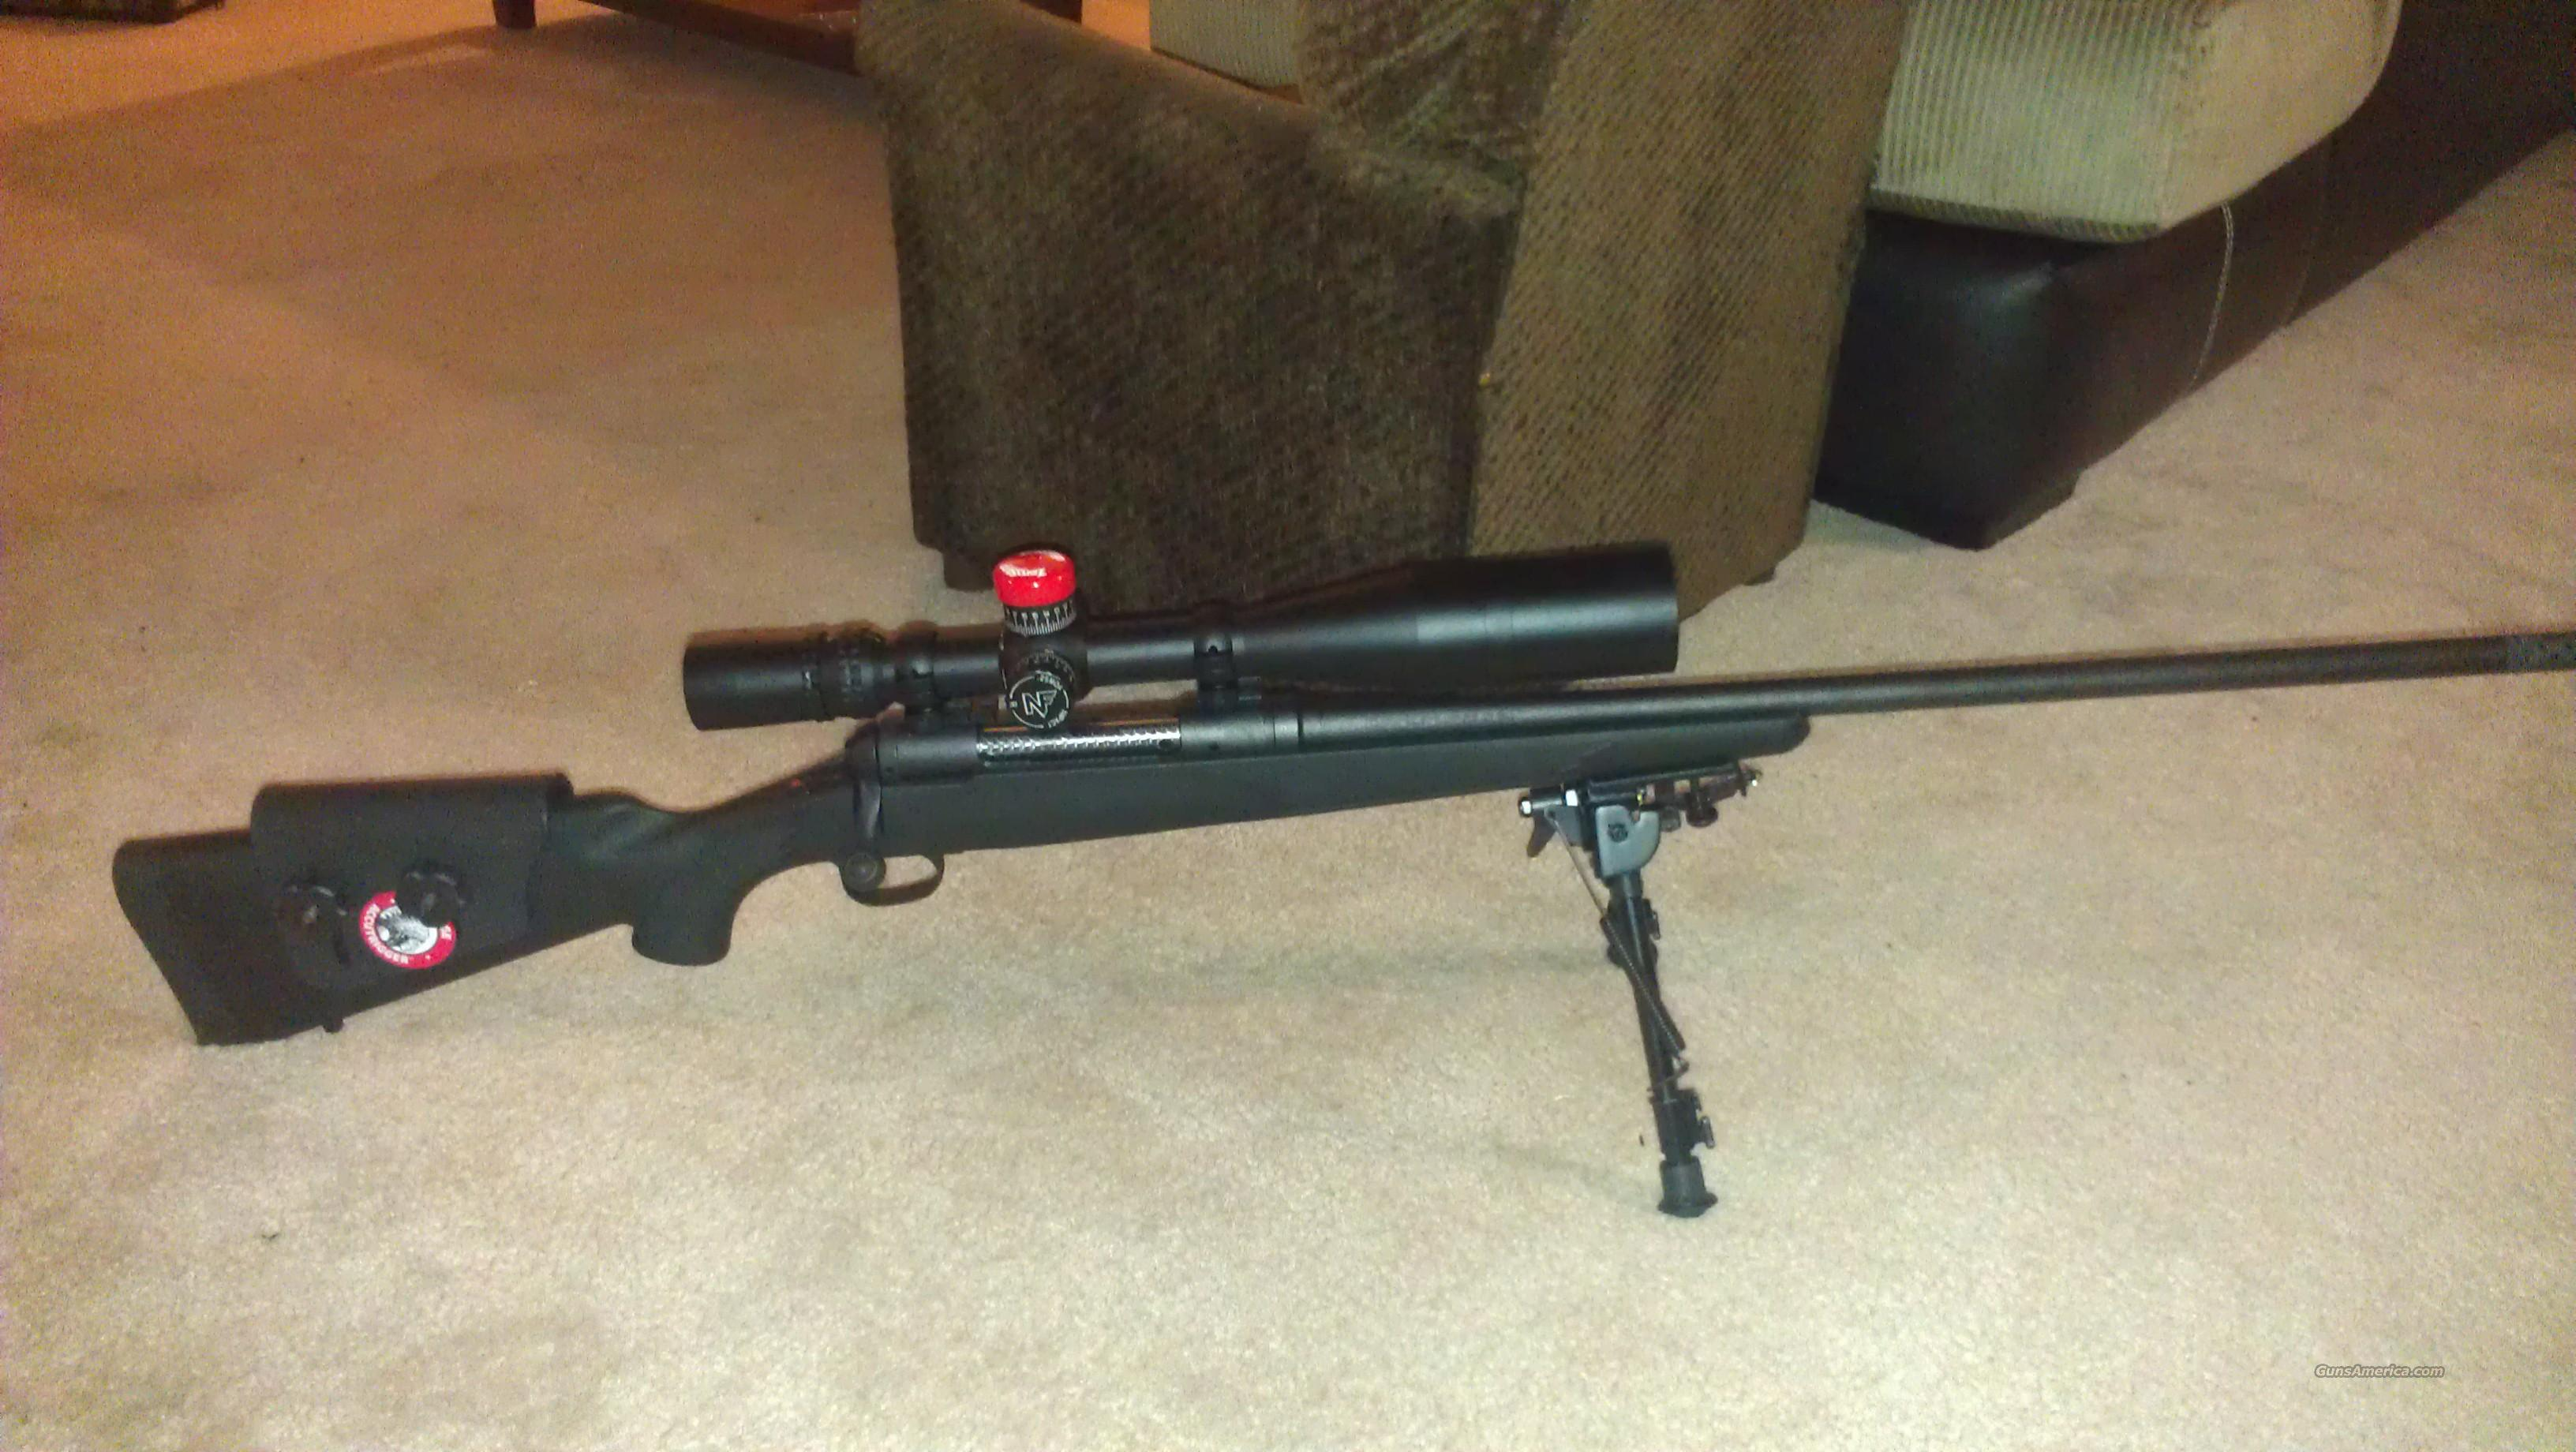 Savage 111 Long Range Hunter Bolt Action Rifle 18898, 7mm Remington Magnum, 26 in, Black Syn AccuStock Stock, Matte Black Finish (SCOPE NOT INCLUDED)  Guns > Rifles > Savage Rifles > Accutrigger Models > Tactical